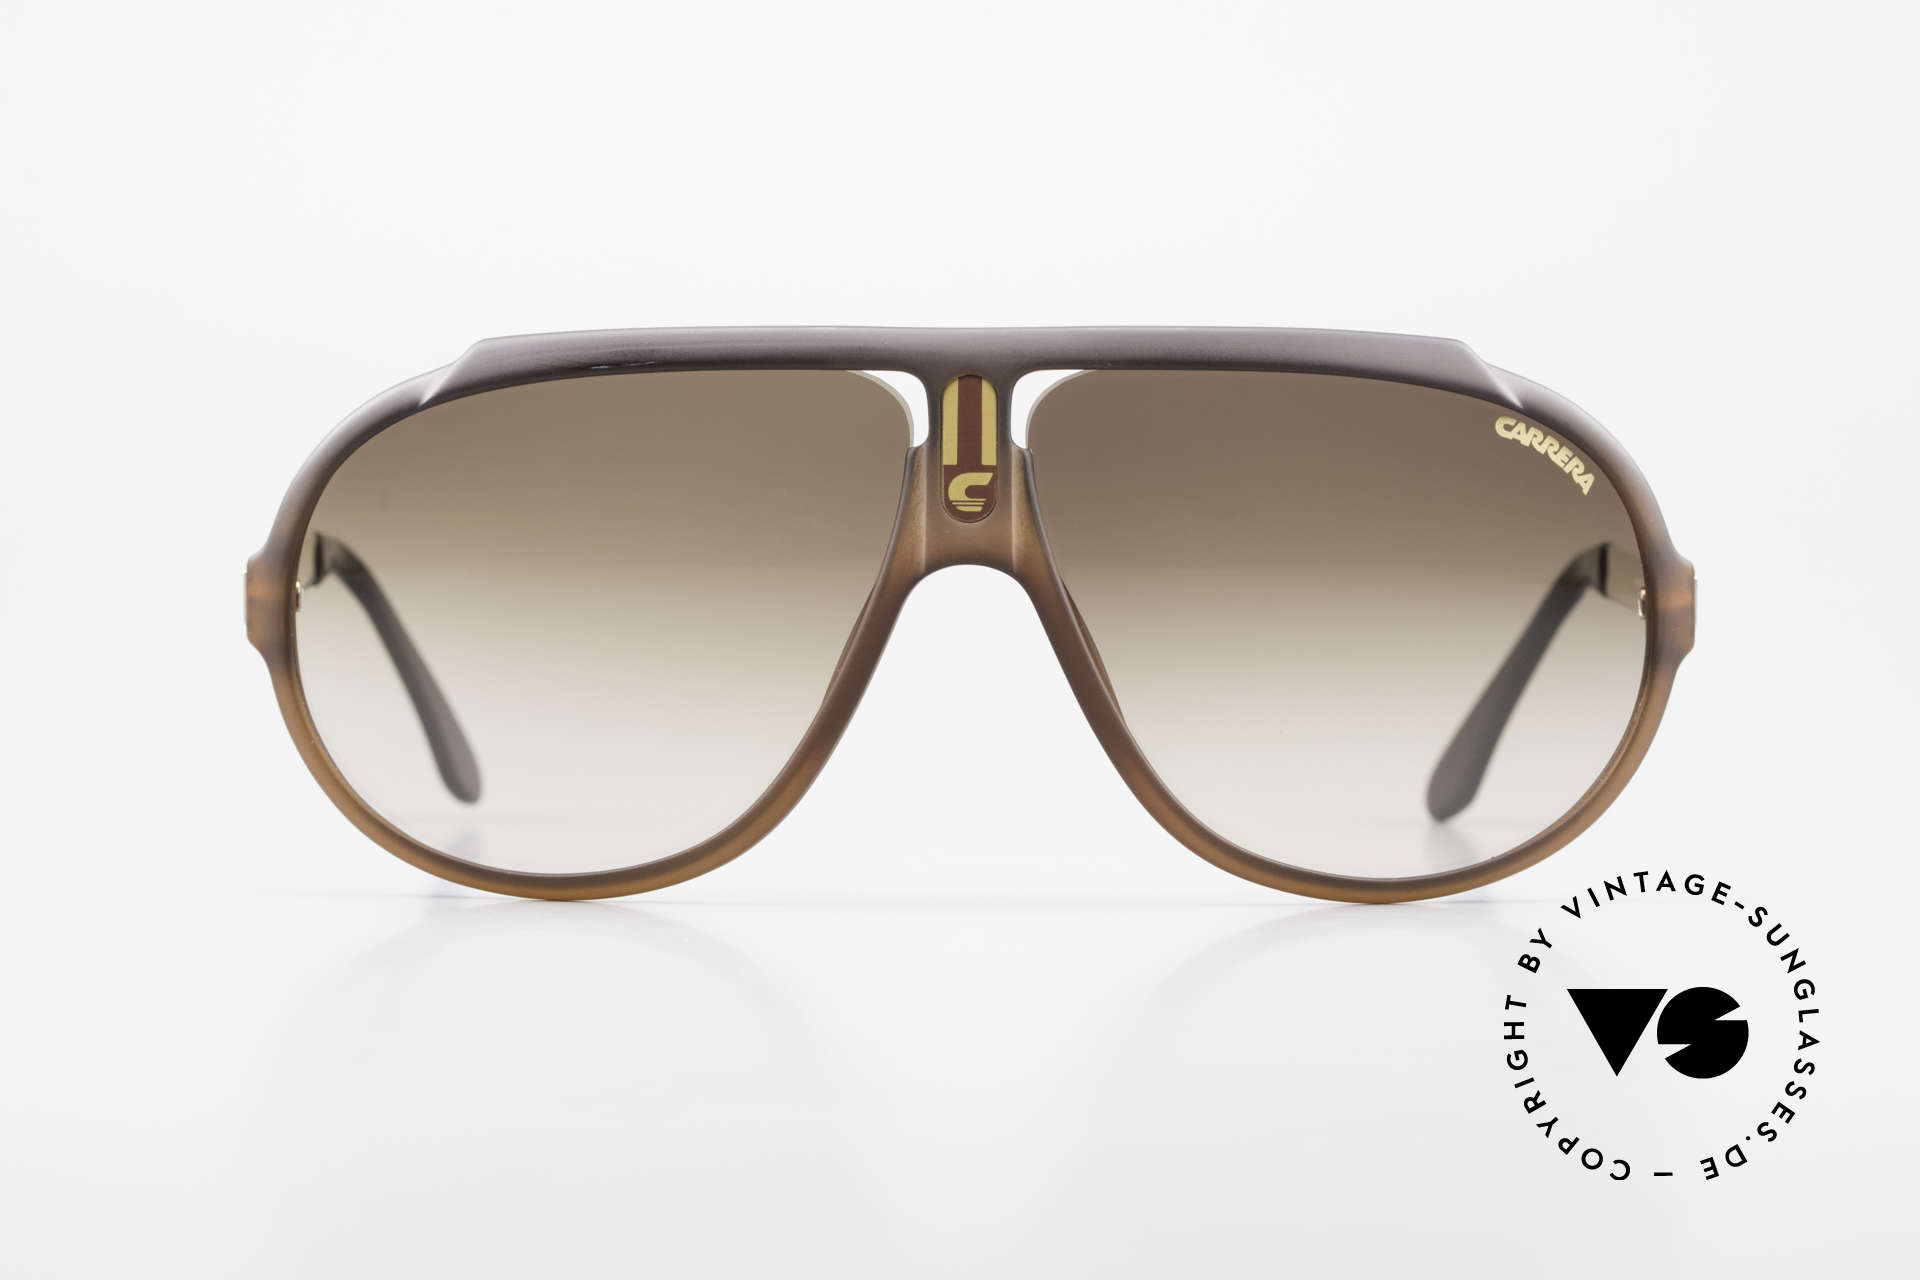 Carrera 5512 80's Don Johnson Sunglasses, famous movie sunglasses from 1984 (a true legend !!!), Made for Men